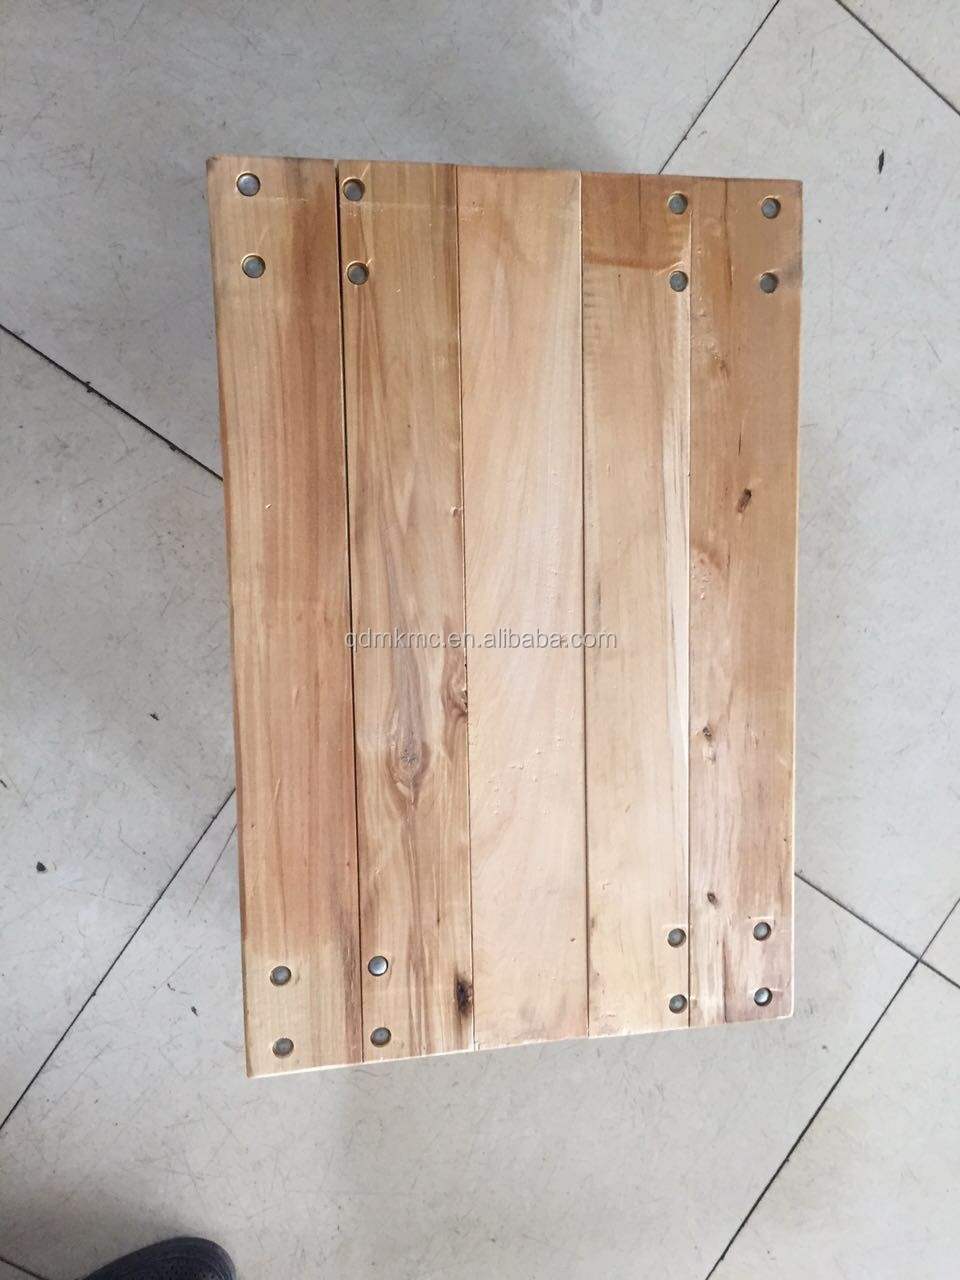 wooden moving dolly/ trolley